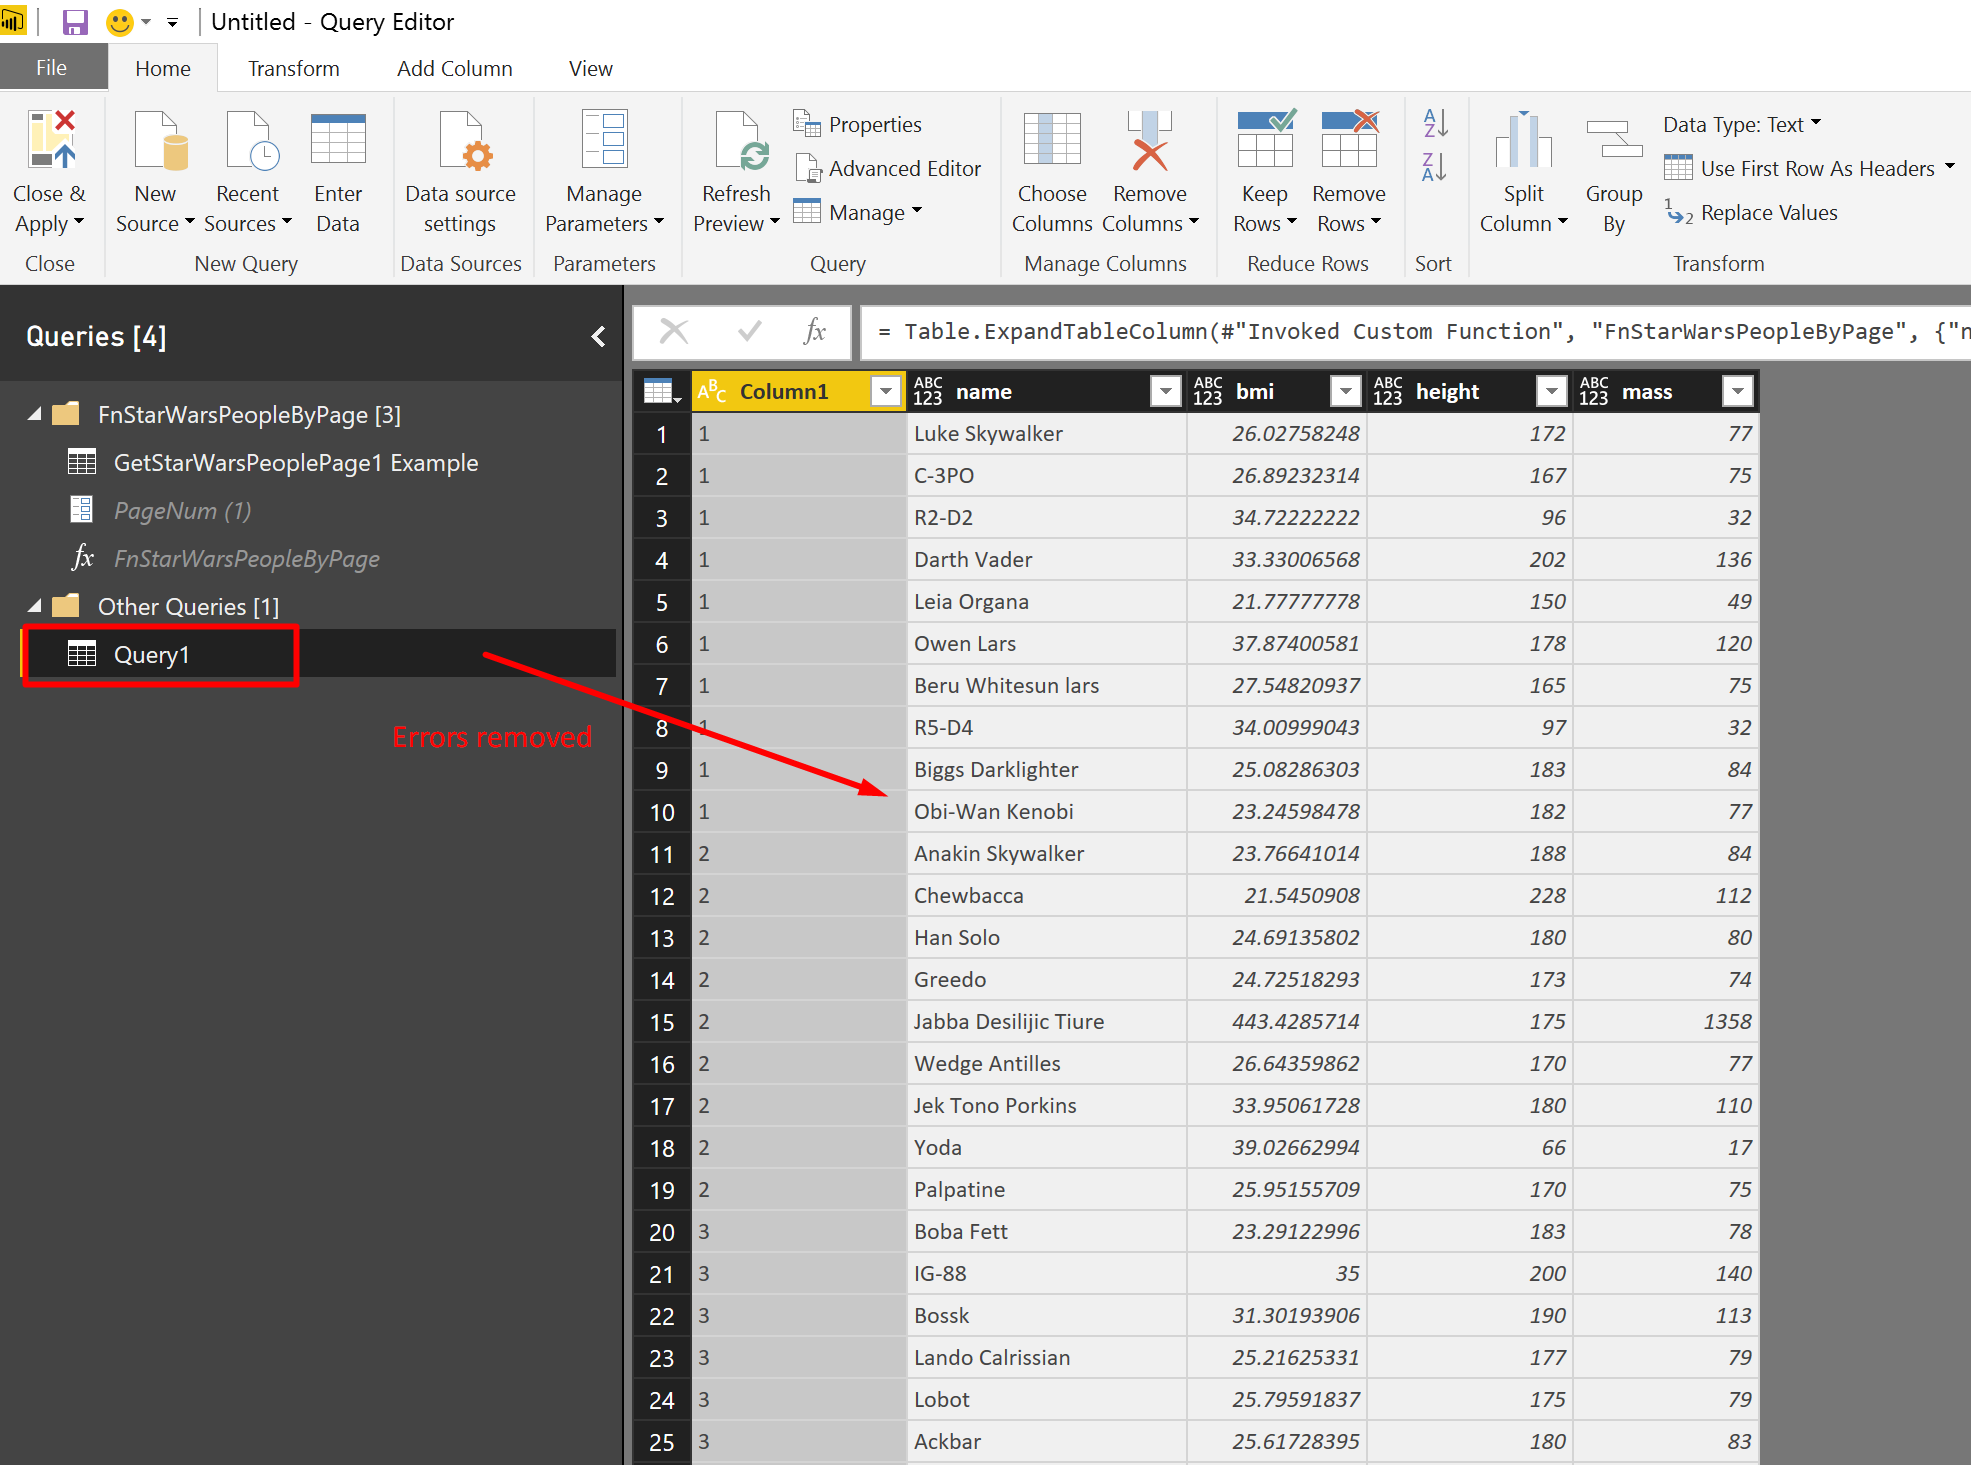 Editing a query example will affect its function query and all the queries that invoke the function in Power BI.